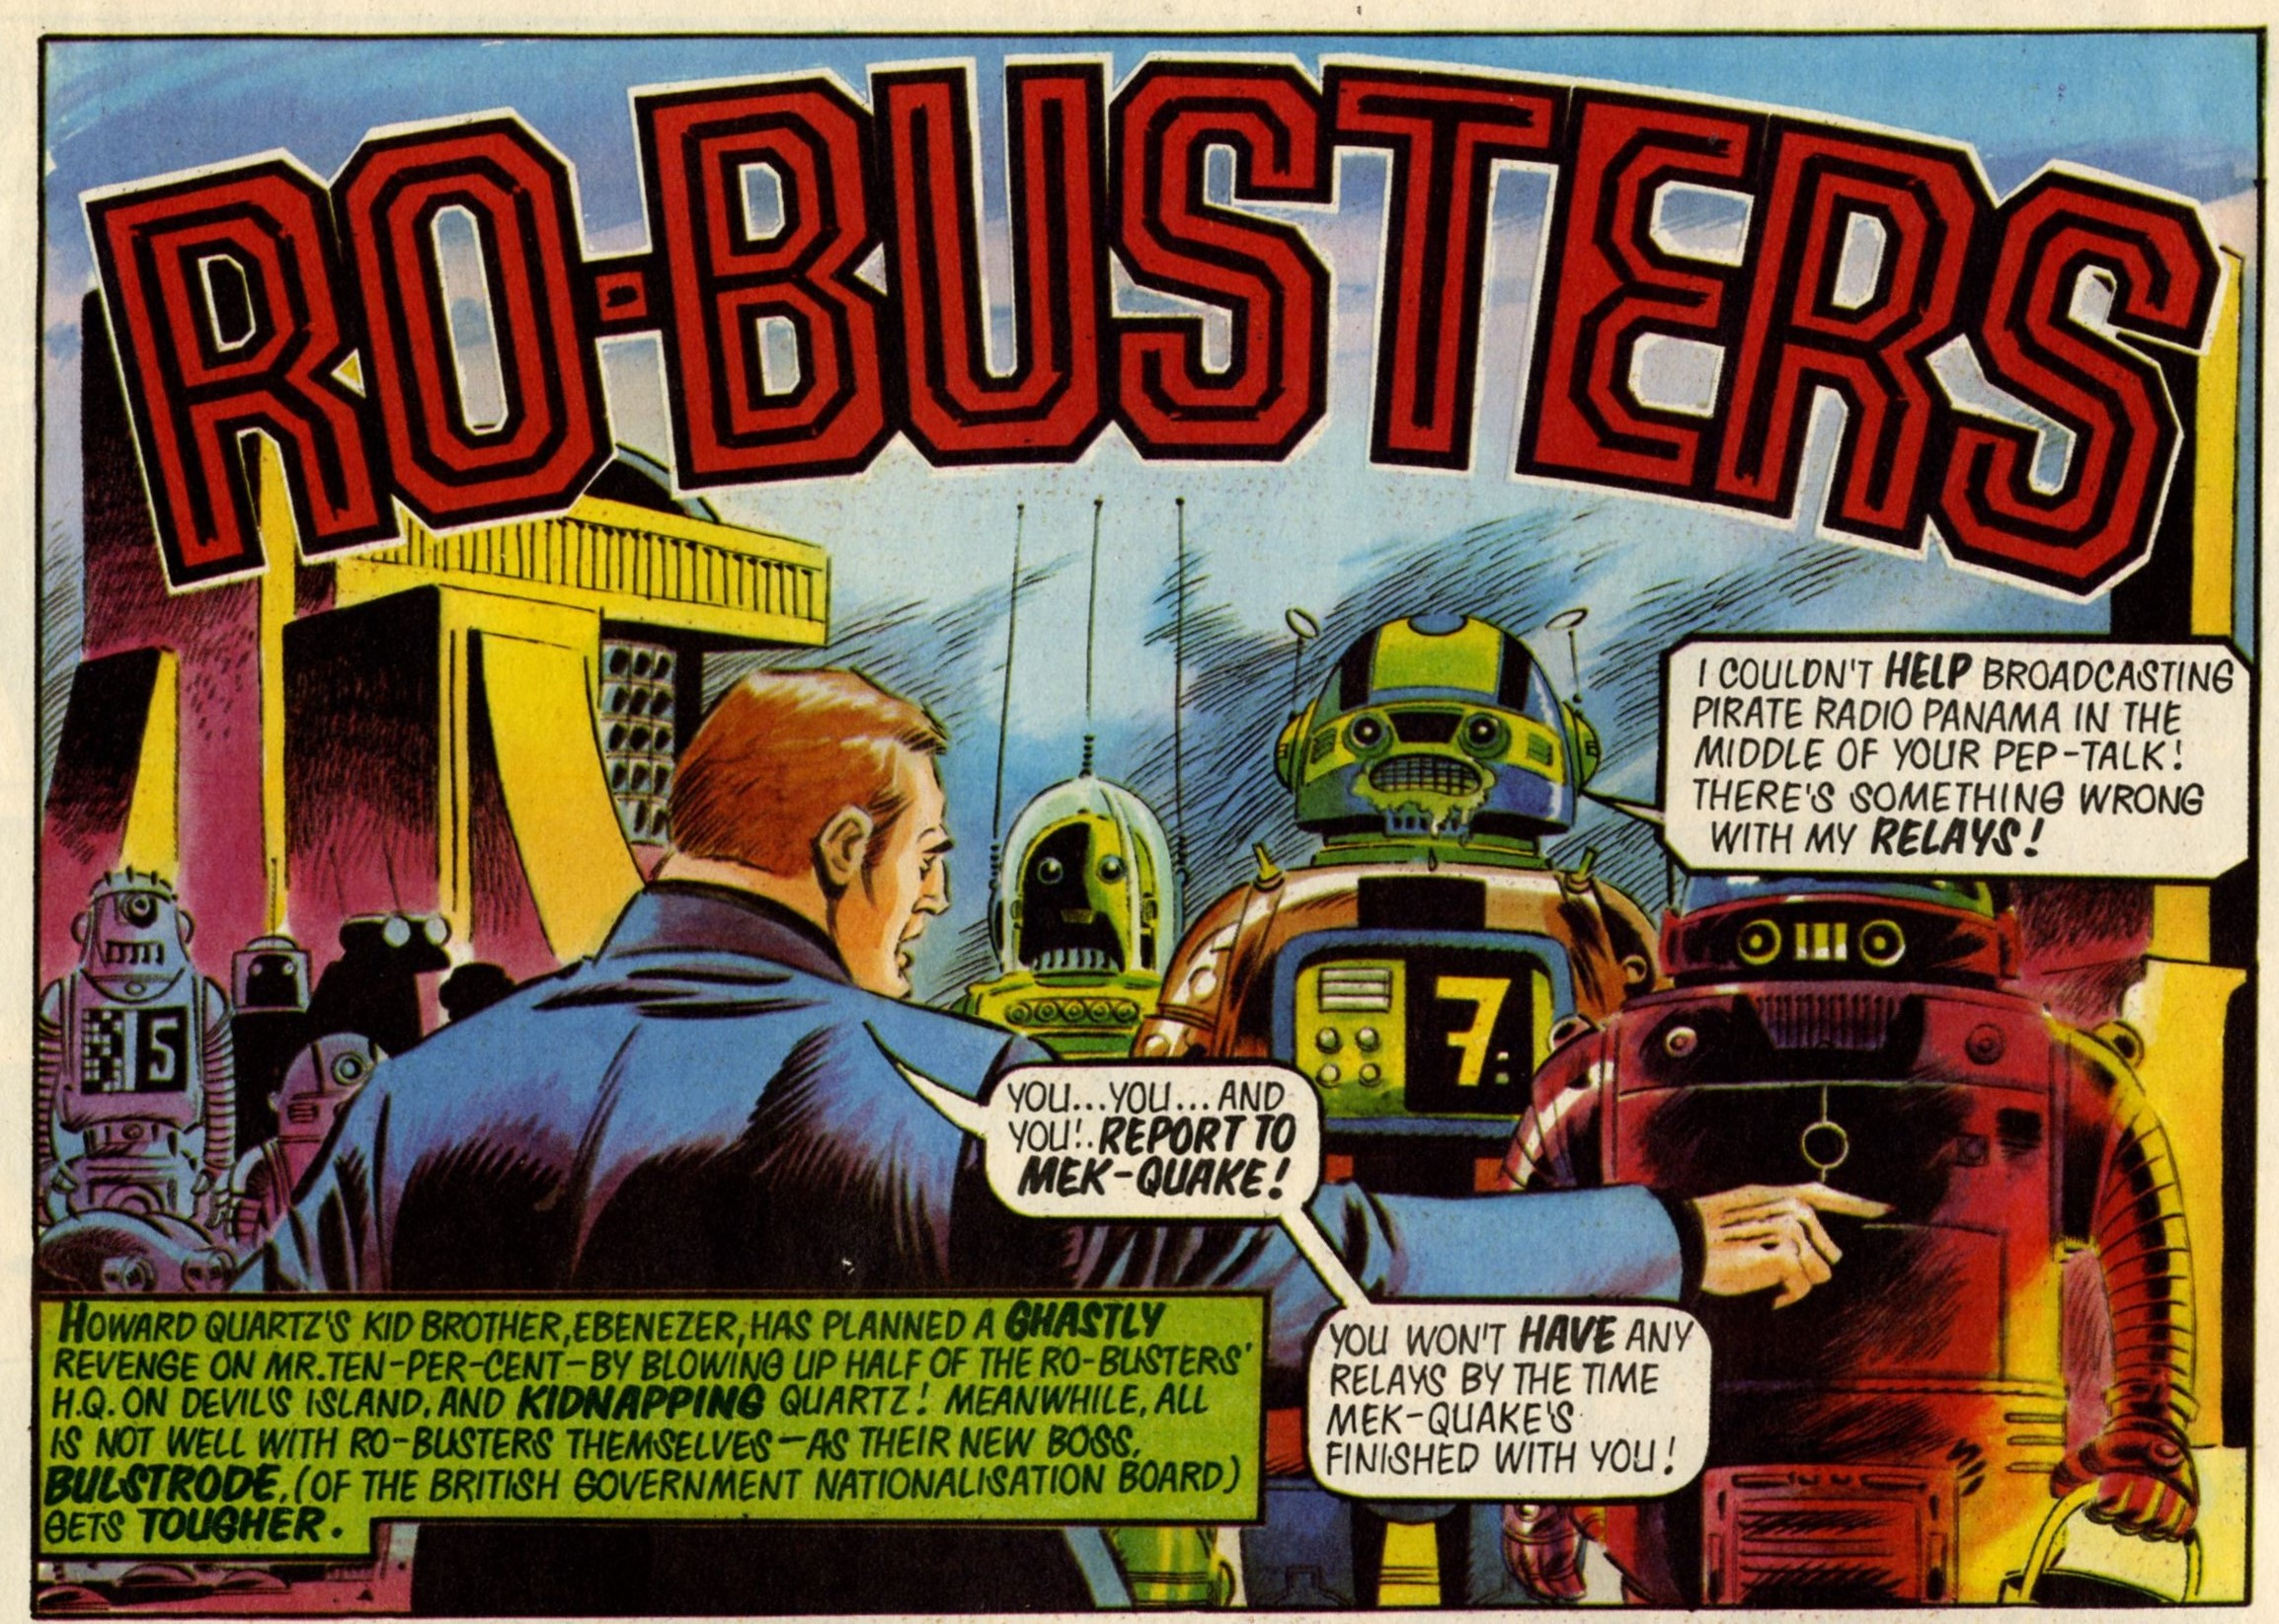 Ro-busters: Chris Lowder (writer), Jose Ferrar (artist)